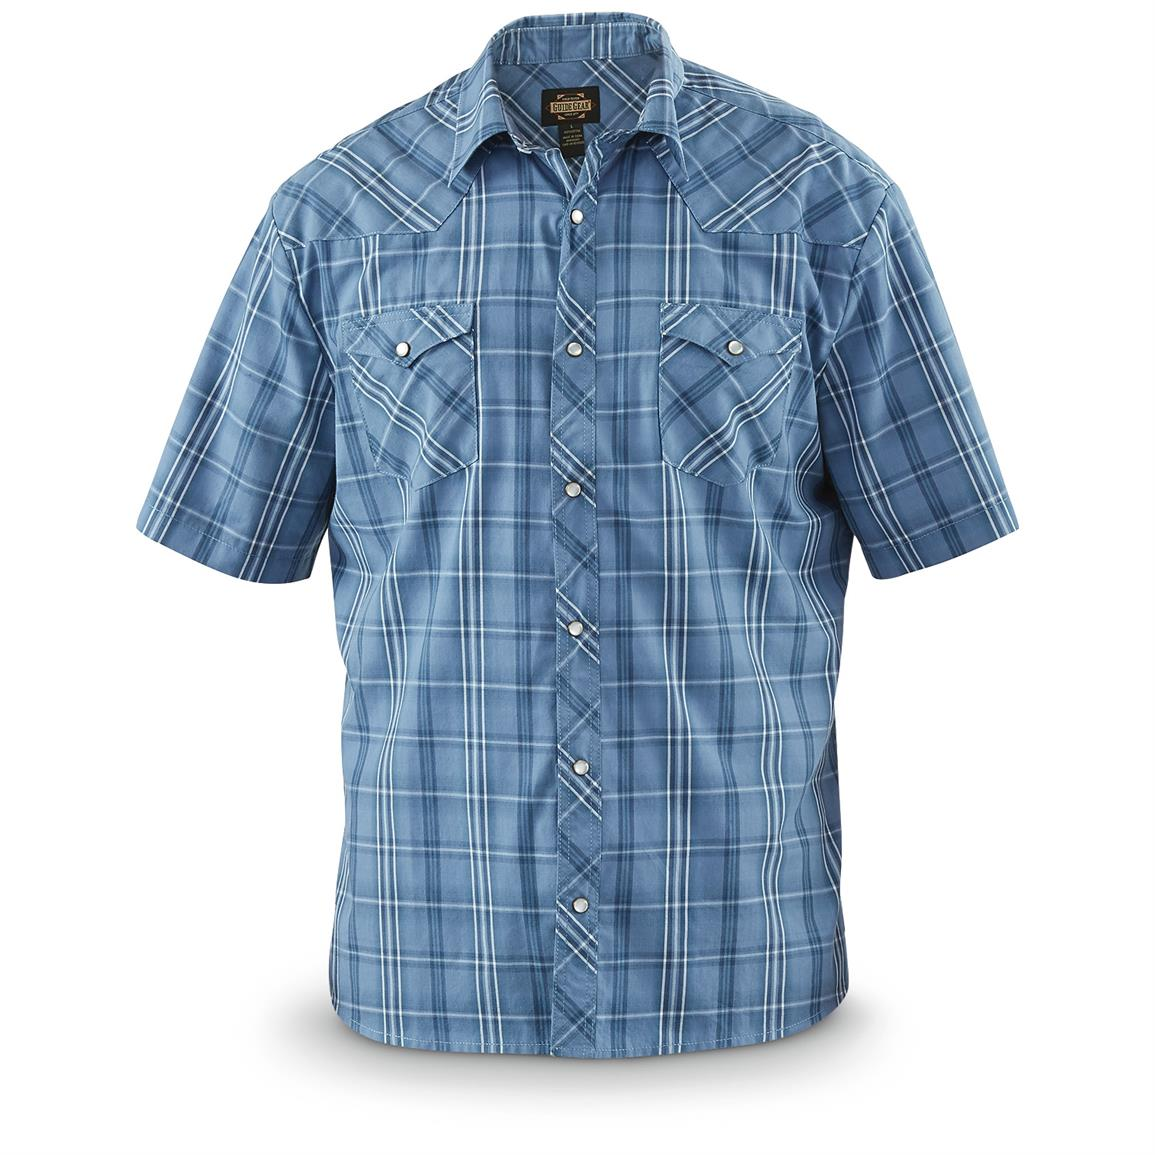 Guide Gear Men's Amarillo Western Short-Sleeve Shirt, Blue Plaid